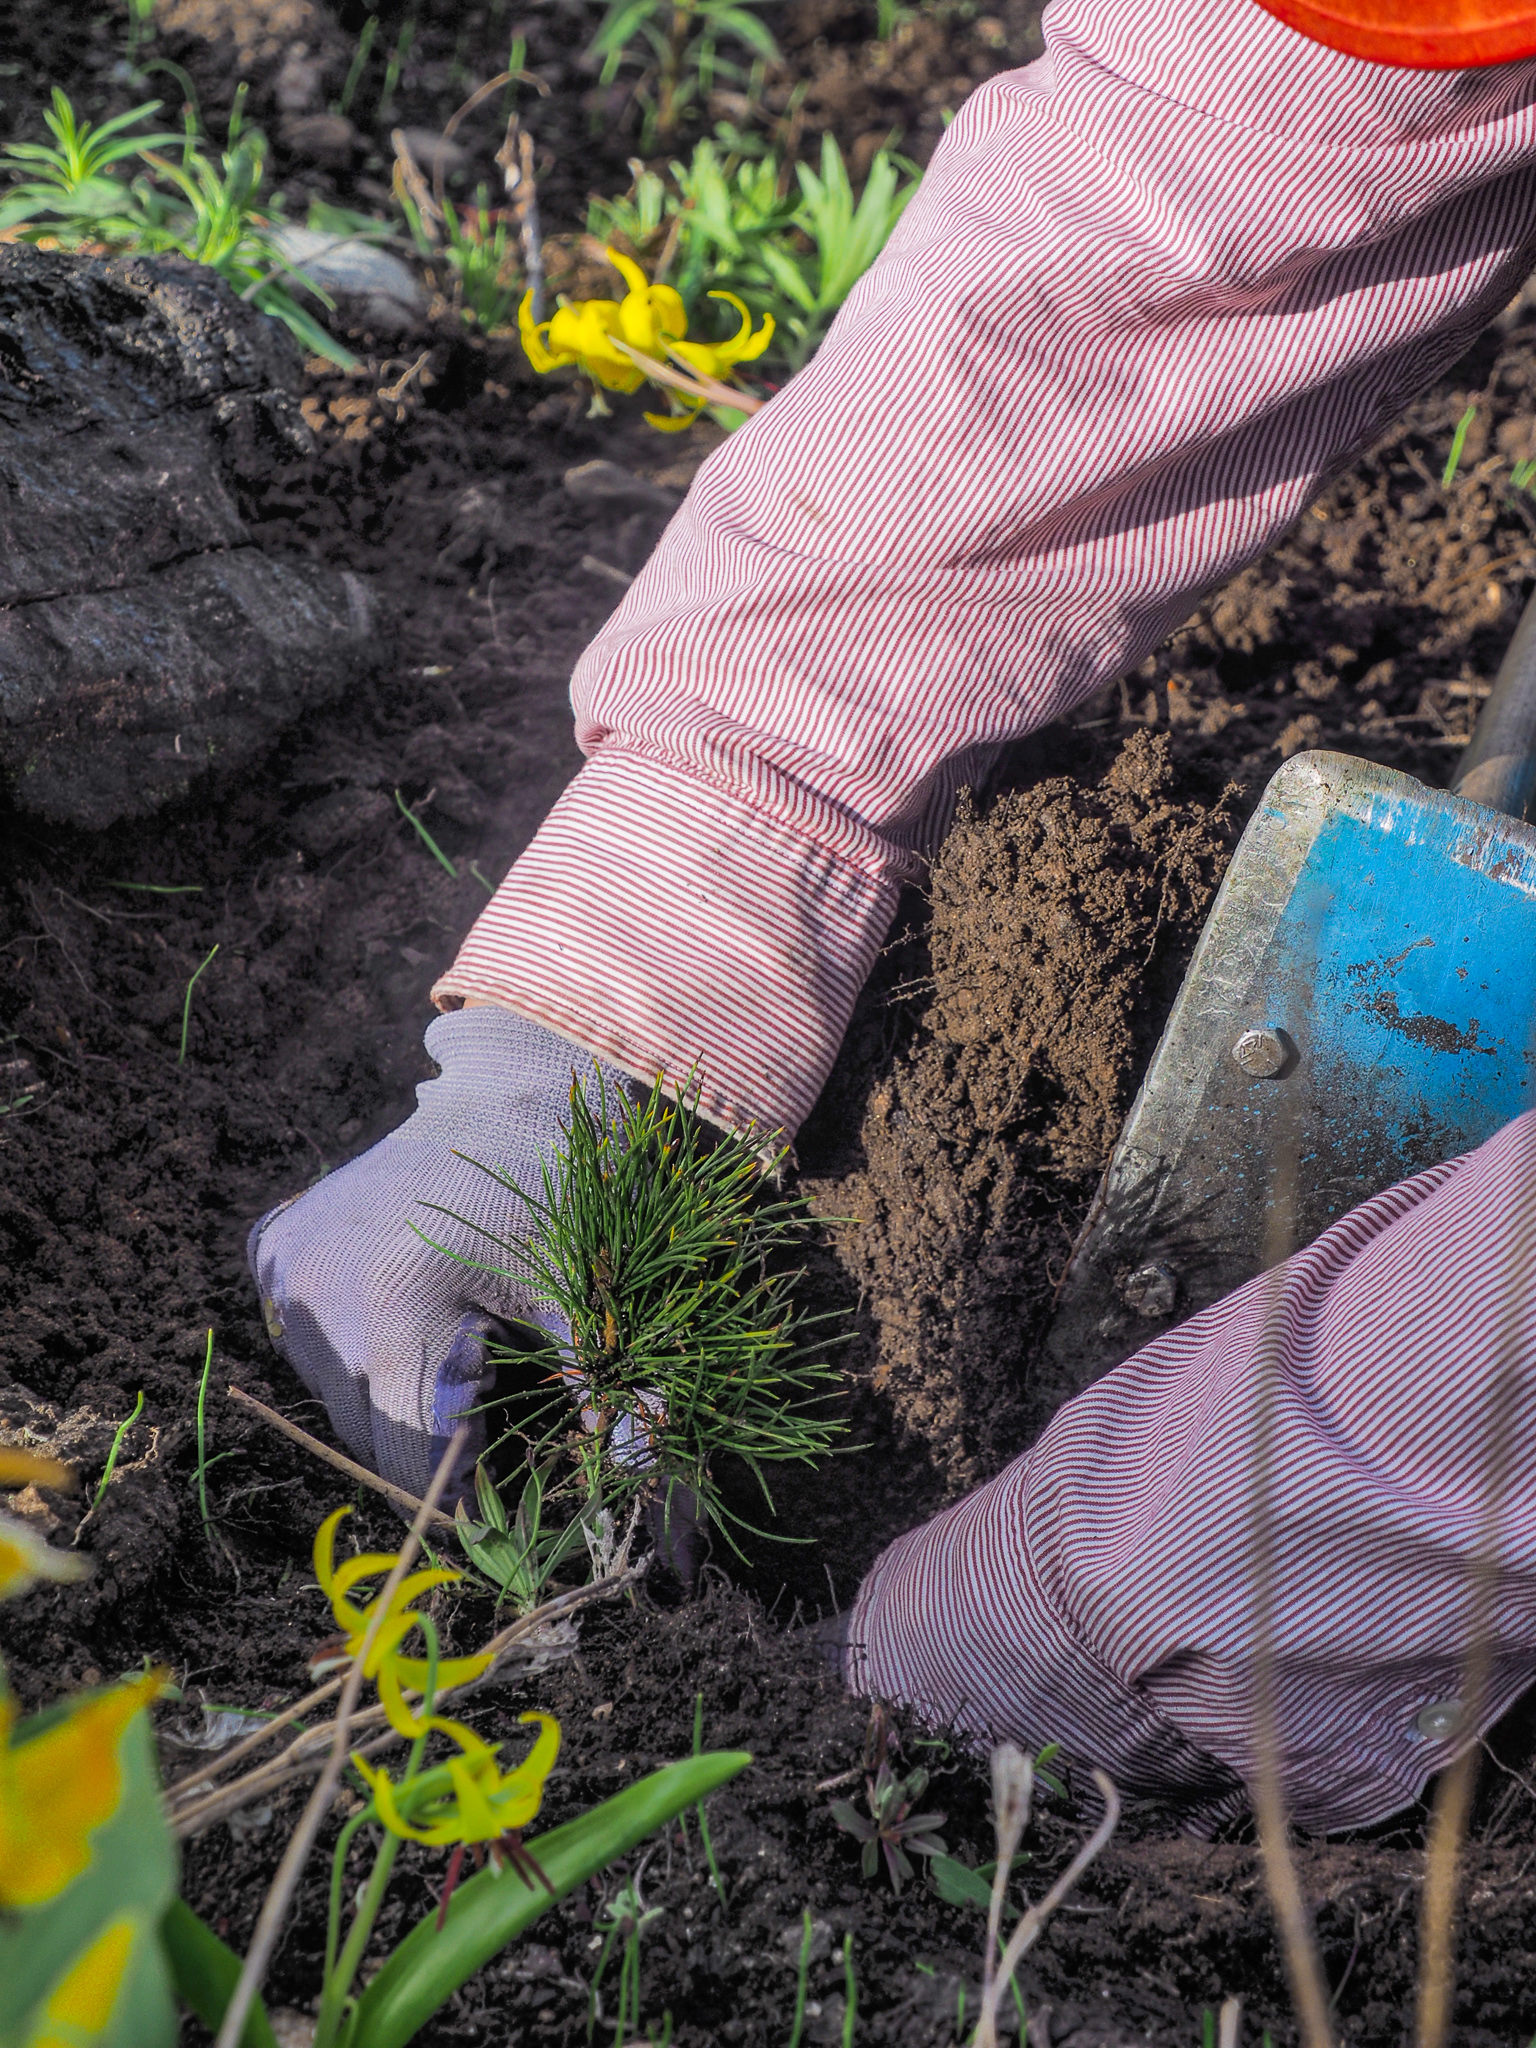 Jes Falvey plants a rust-resistant seedling at the site of a recent forest fire—Custer-Gallatin National Forest, Montana.